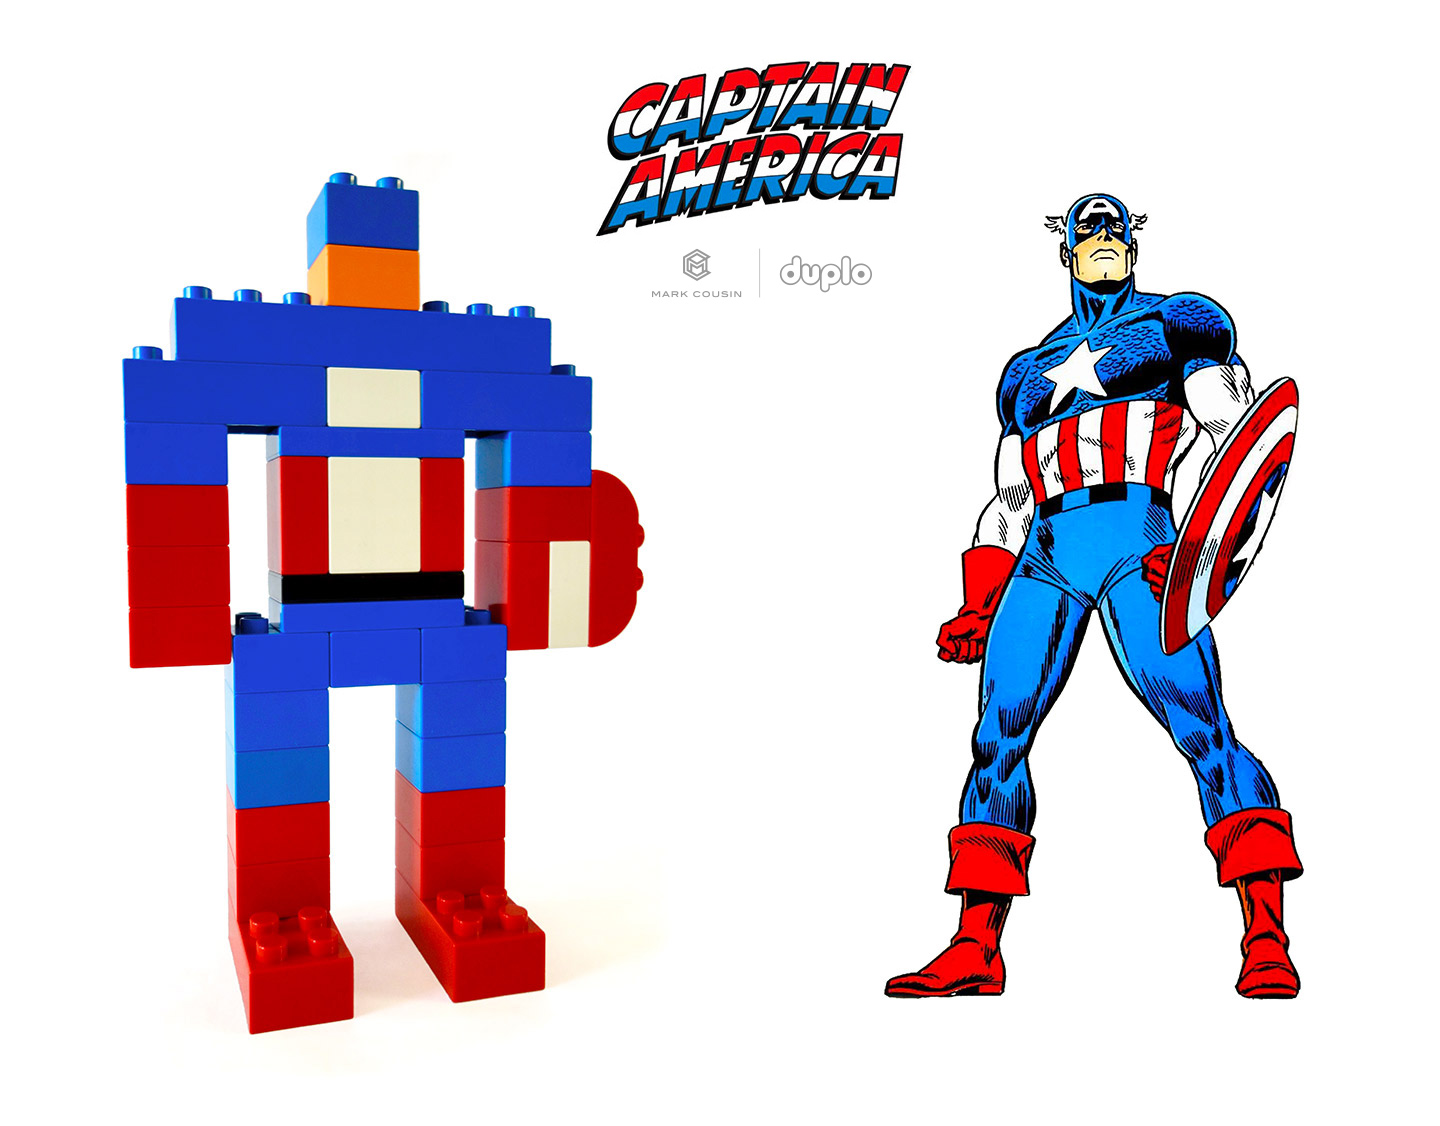 Captain_America_MC_Duplo